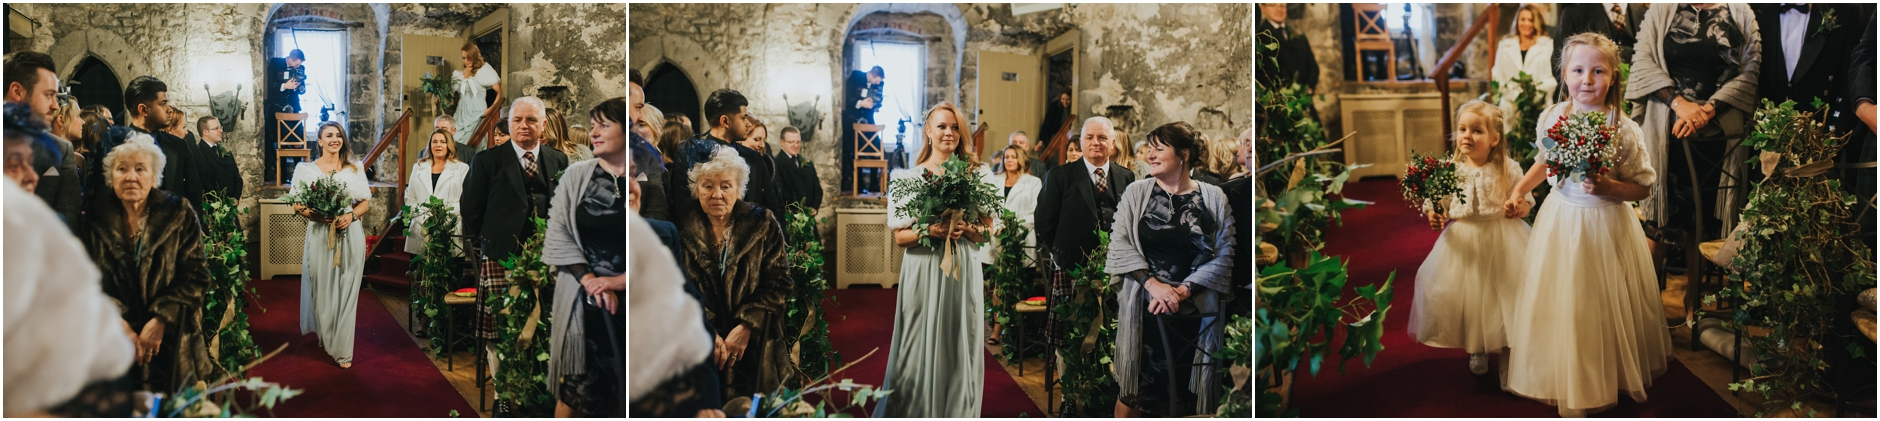 dundas castle wedding winter